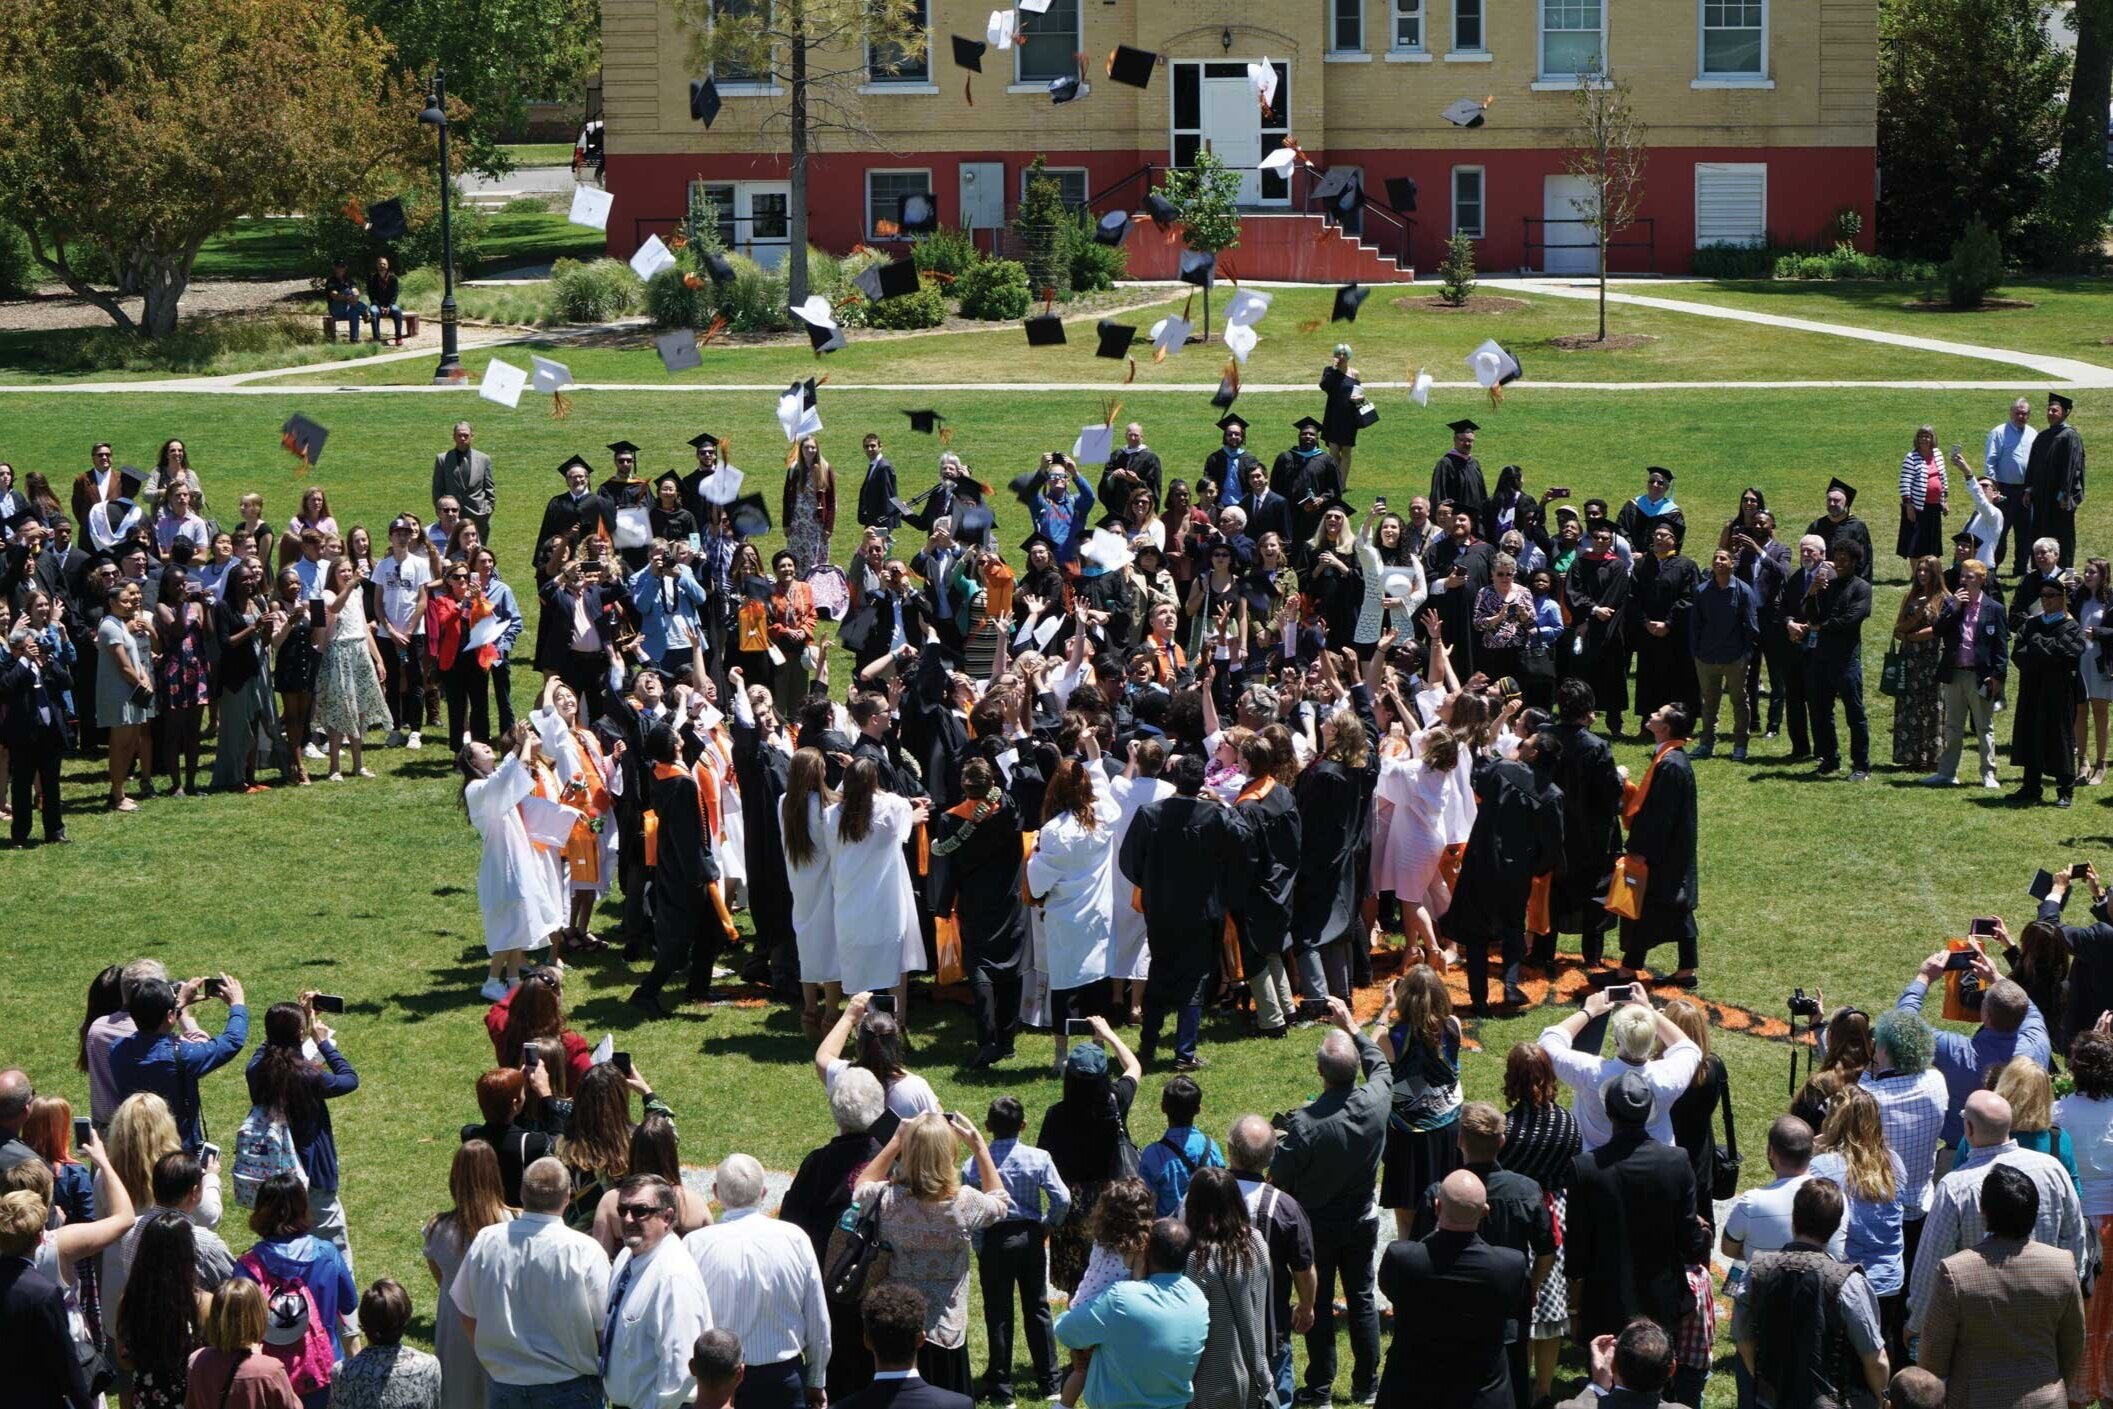 COMMENCEMENT - The Commencement ceremony on the quad is our most joyous tradition, during which all diplomas are formally conferred.